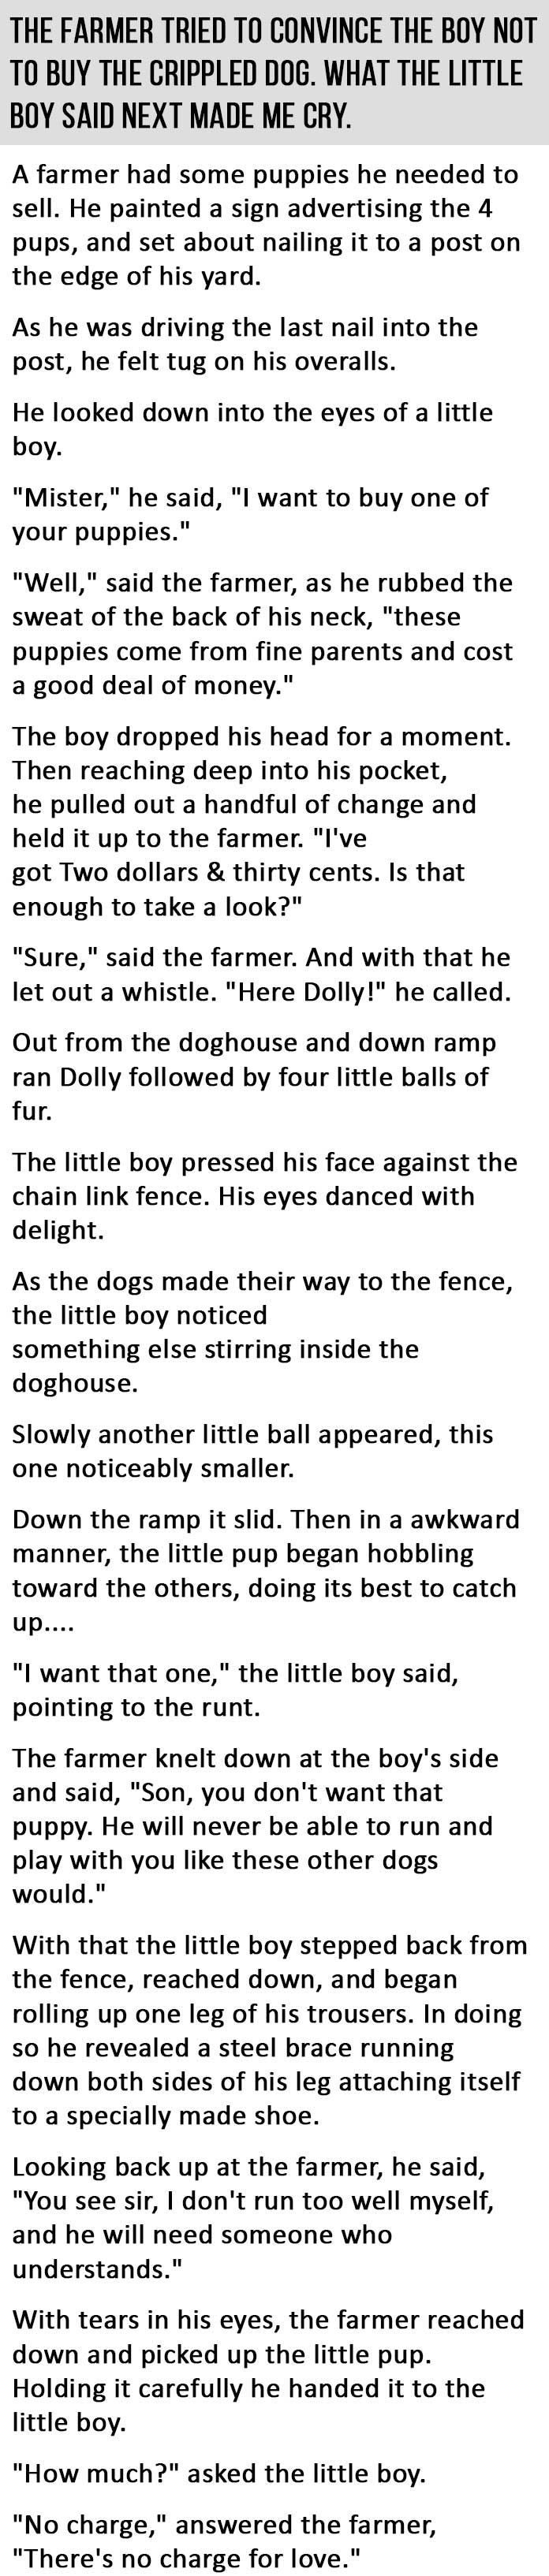 Read this quite sometime back, still make me shed a tear.